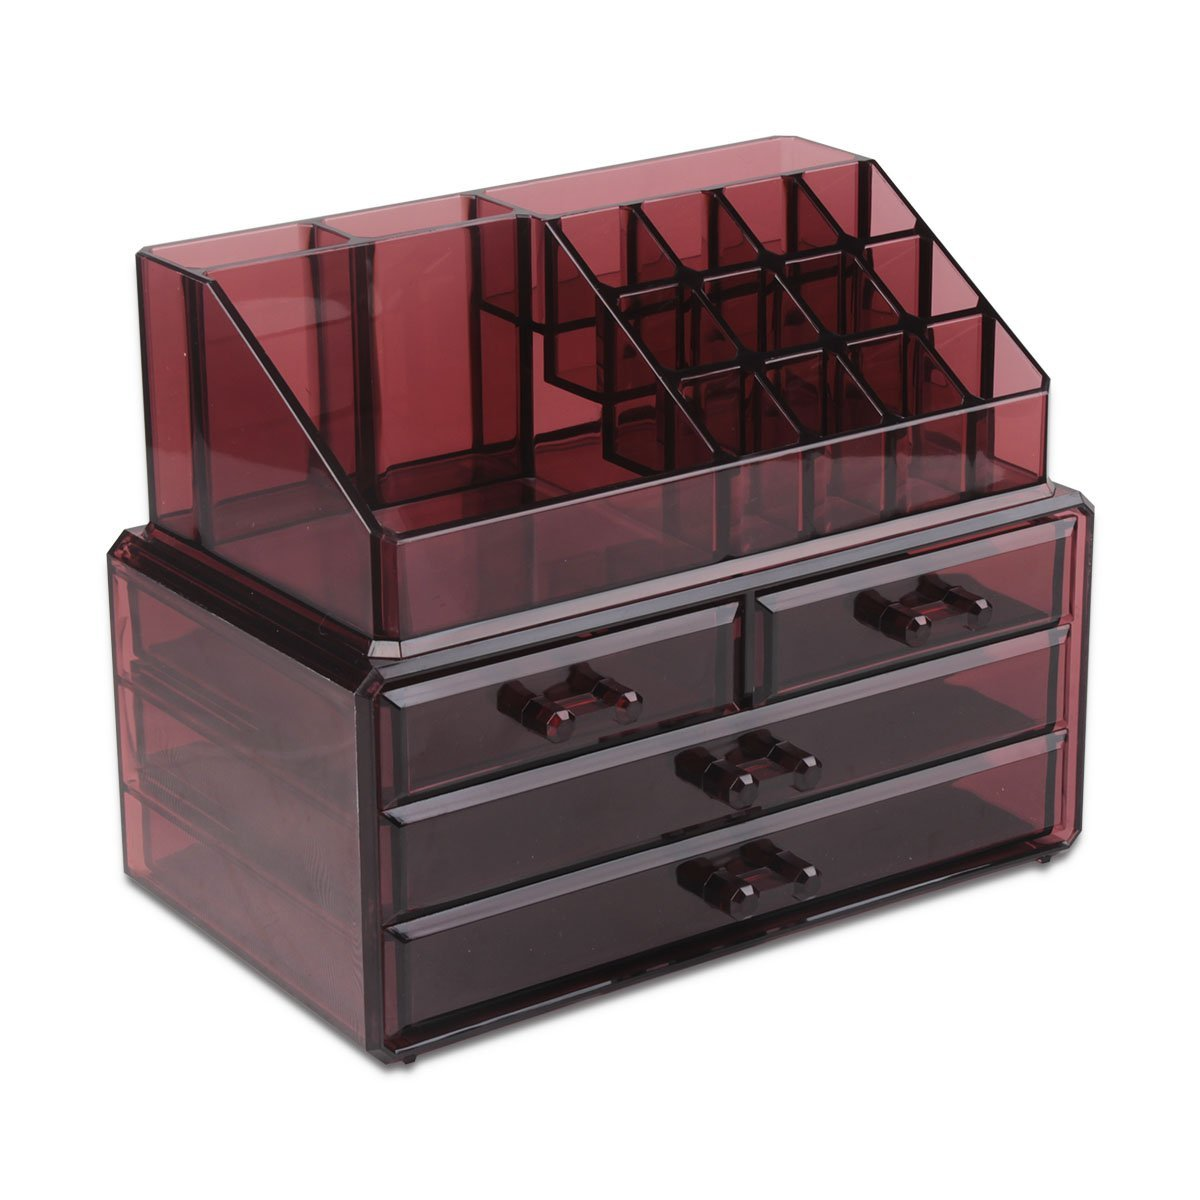 Switol Design Acrylic Jewelry & Cosmetic Makeup Organizer Storage Display Boxes, Two Pieces Drawers Set (Burgundy)